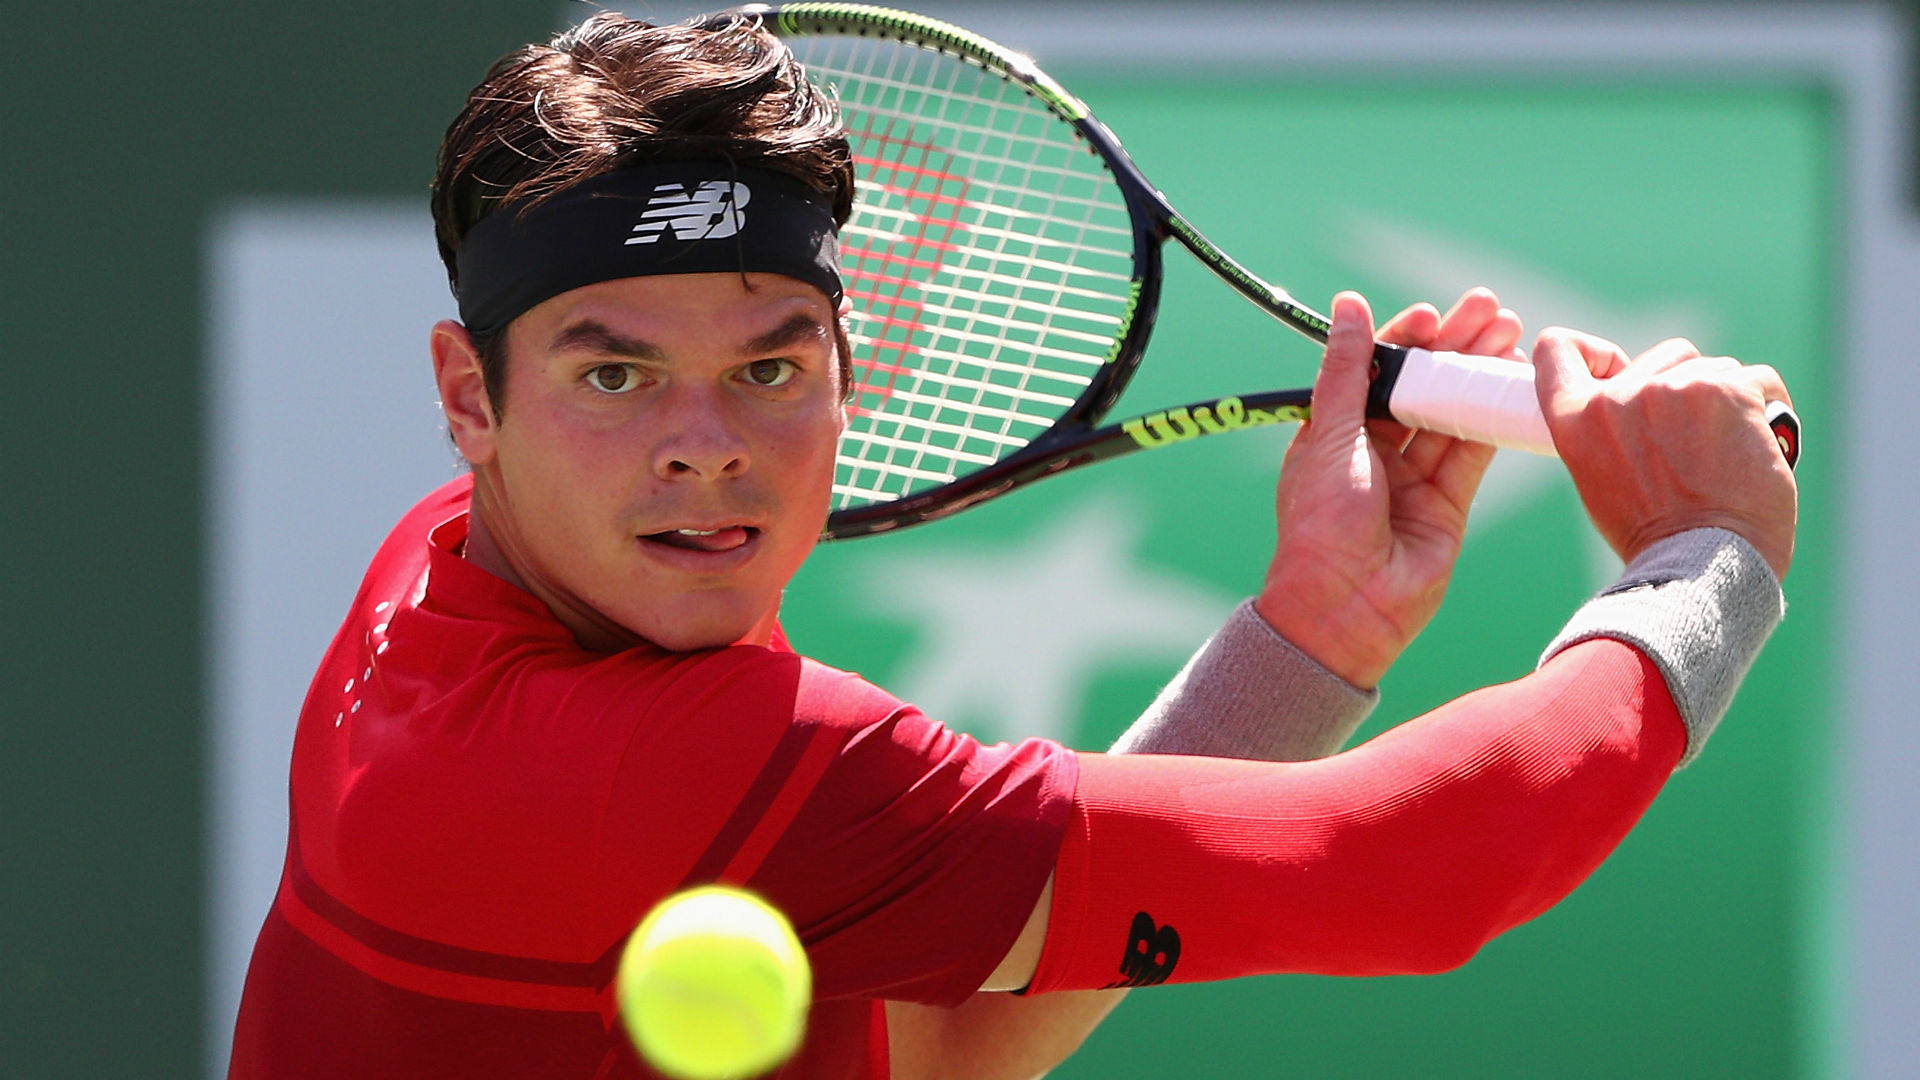 Raonic withdraws from US Open due to glute injury